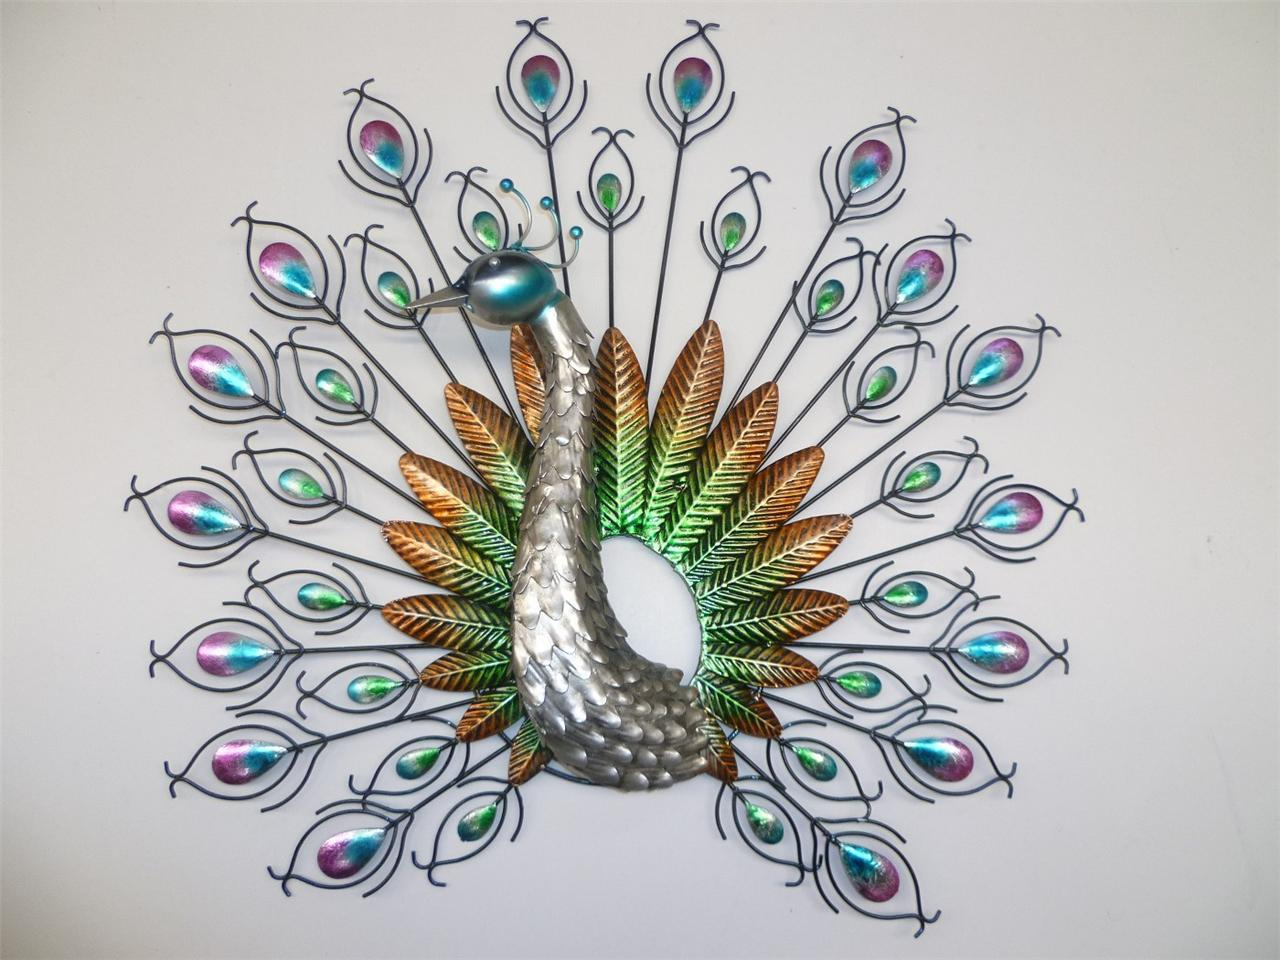 Metal wall art stunning 3d fantail peacock bird wall decor for Peacock wall art